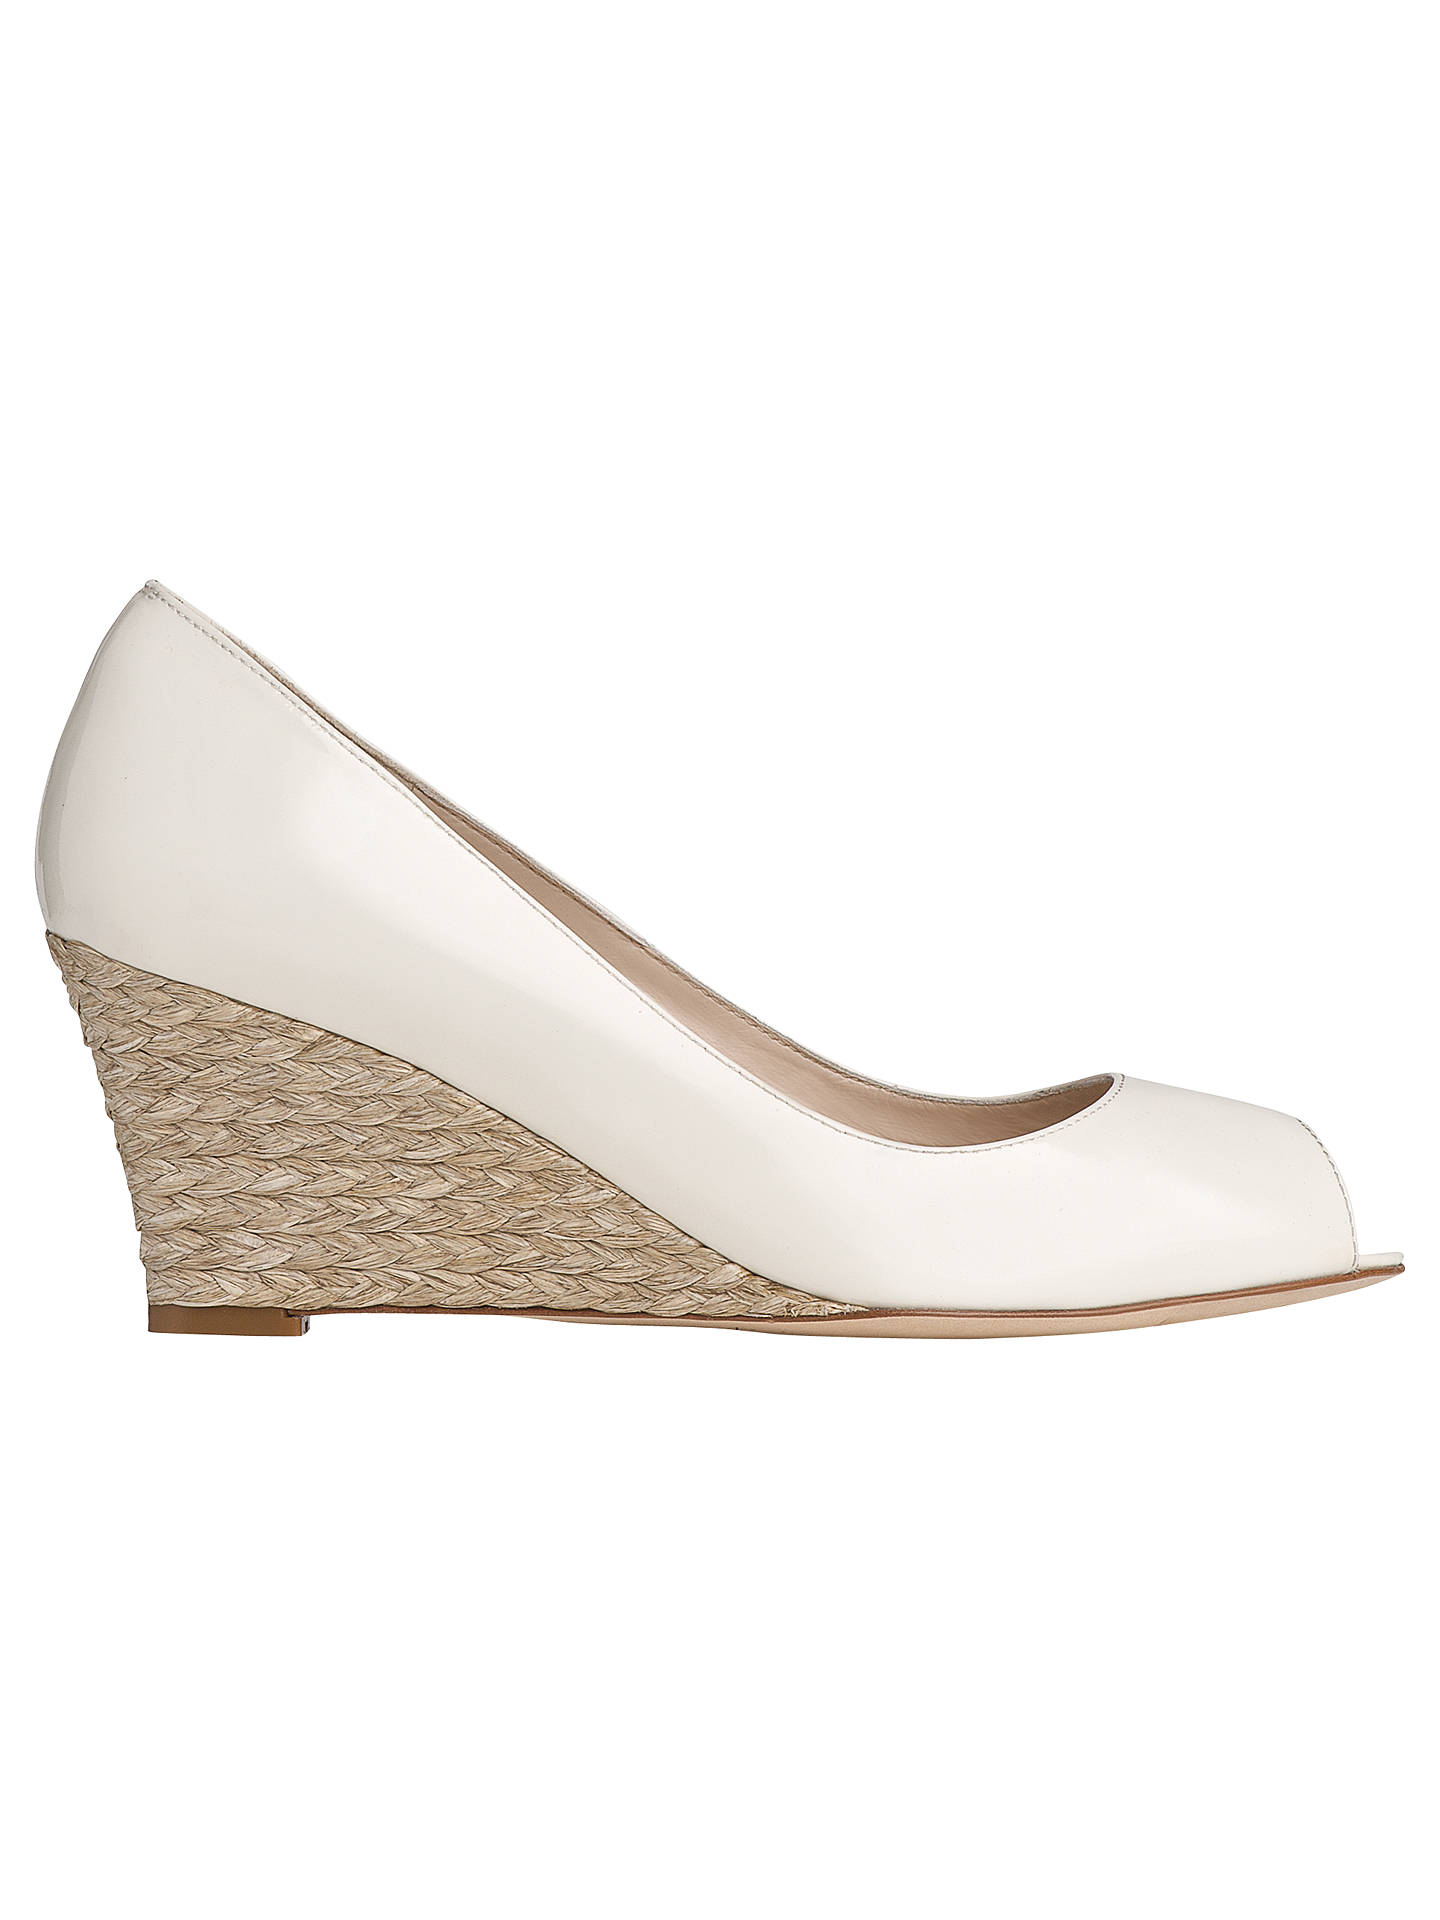 58072f4f40 Buy L.K. Bennett Zelita Patent Leather Peep Toe Wedges, Ivory, 2 Online at  johnlewis ...